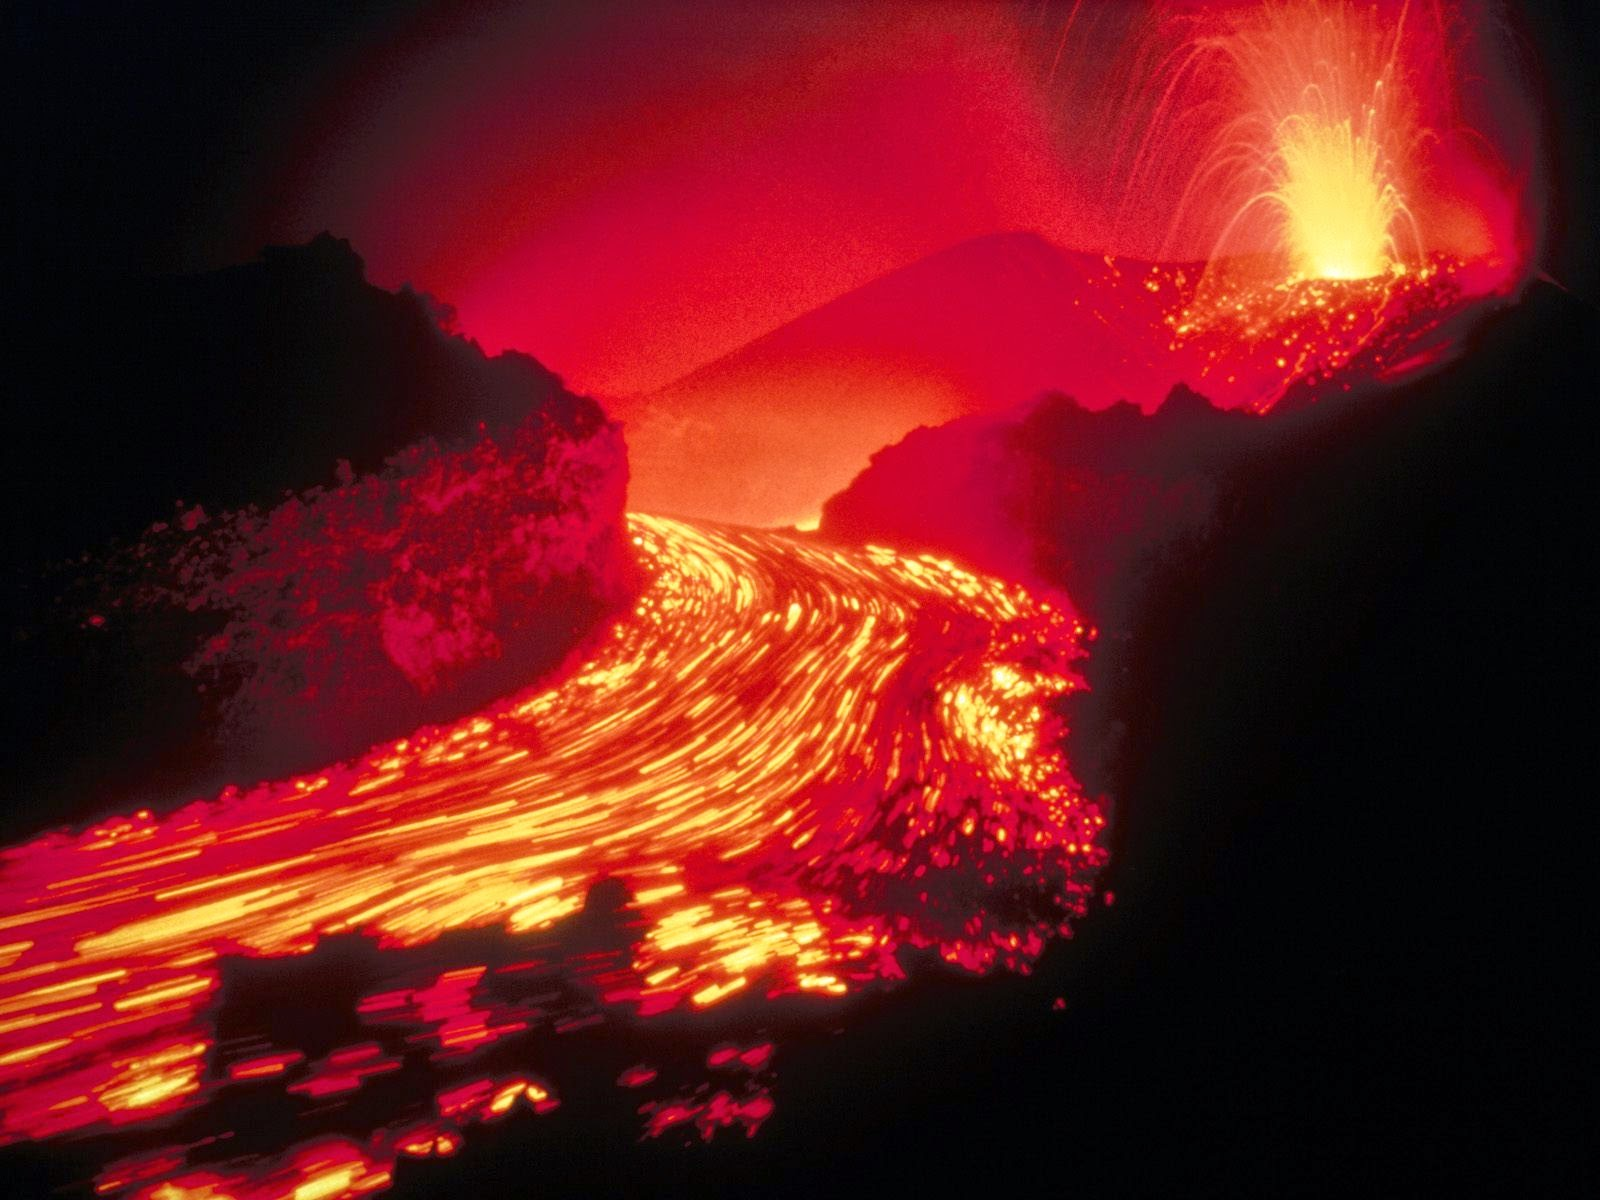 Science Online The Volcanoes And The Safety Precautions Must Be Taken At The Occurrence Of The